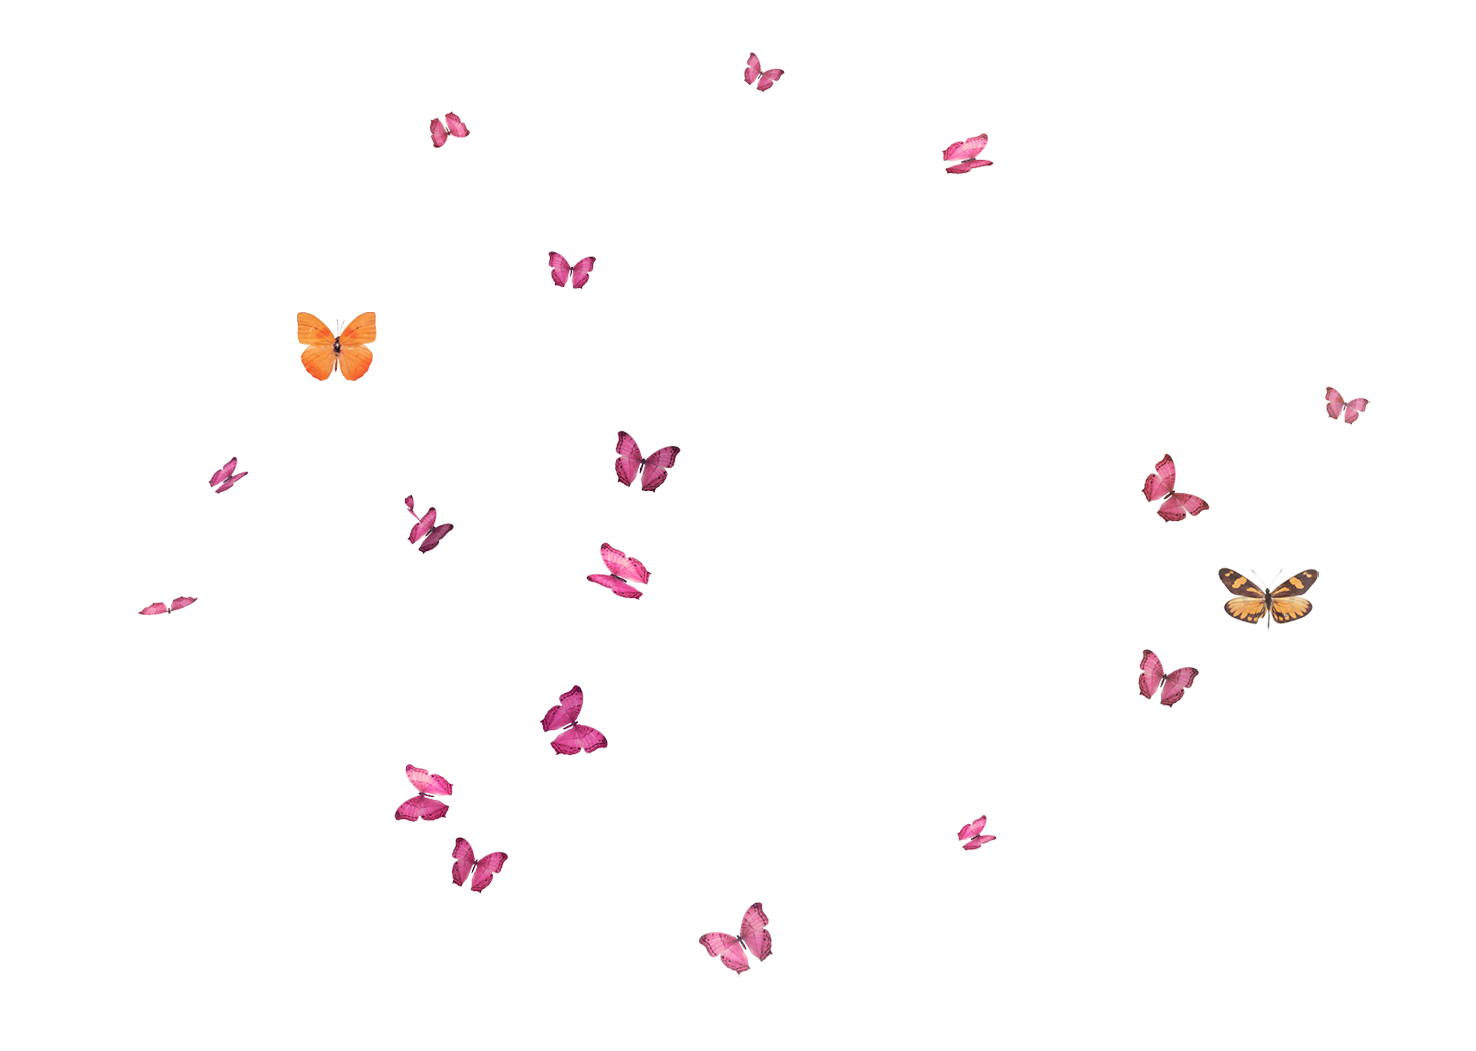 kisspng-butterfly-flight-flying-butterfly-5a87e1f4b599d0.0130056715188546447439.png